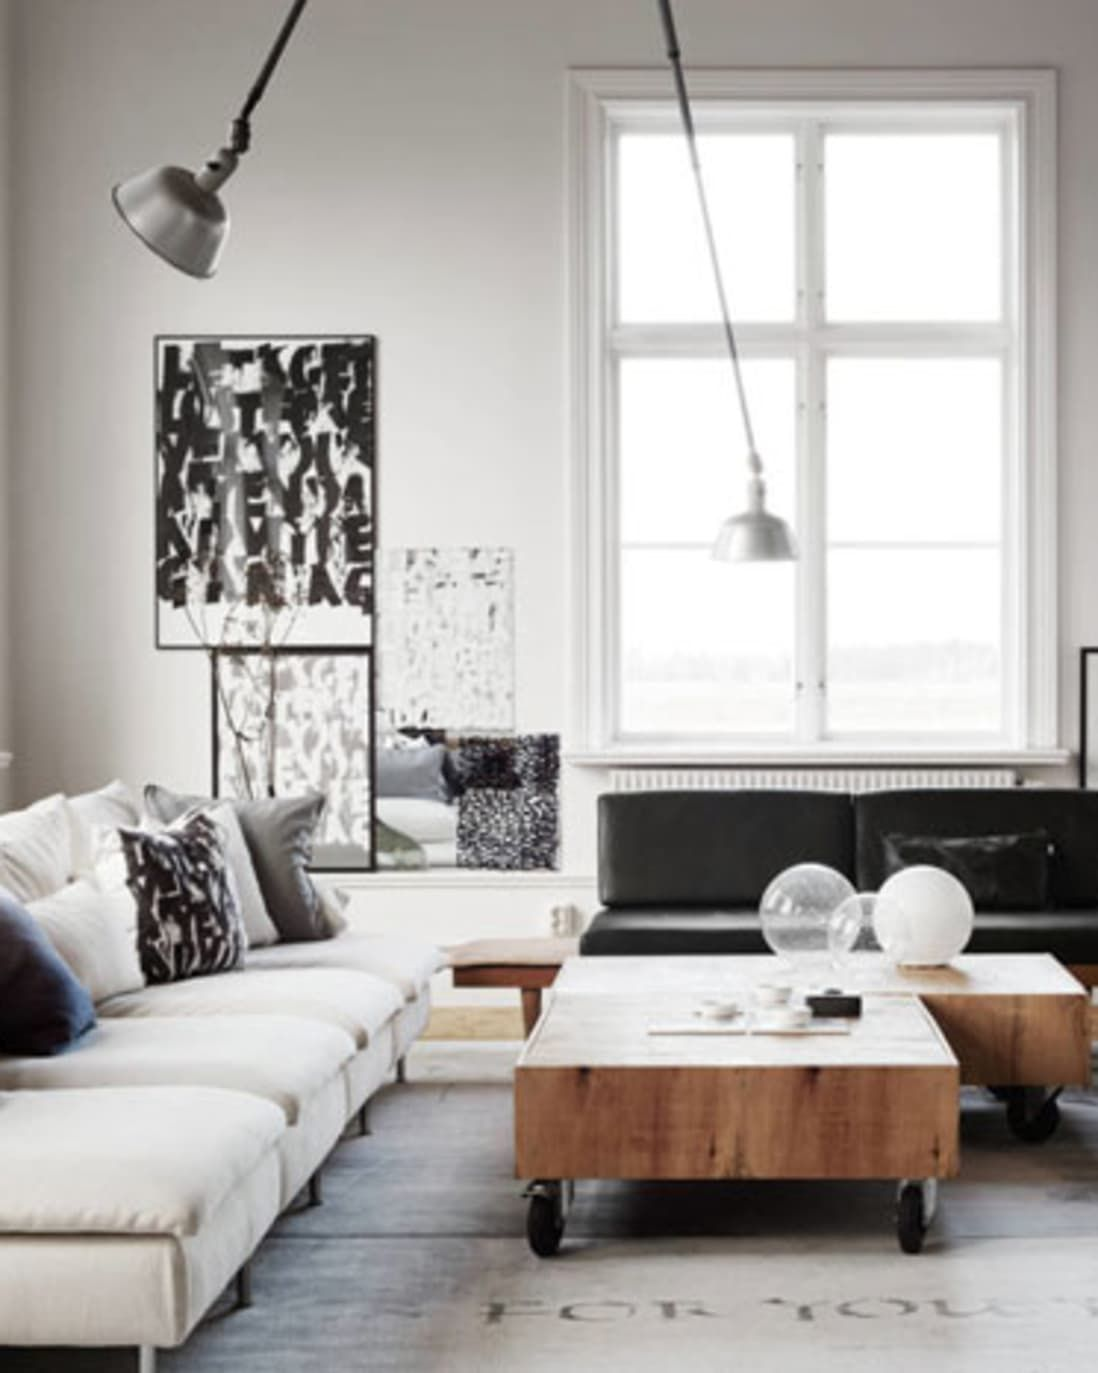 How To Set Up Your Living Room Without A Focus On The Tv Living Room Living Room Arrangements Room